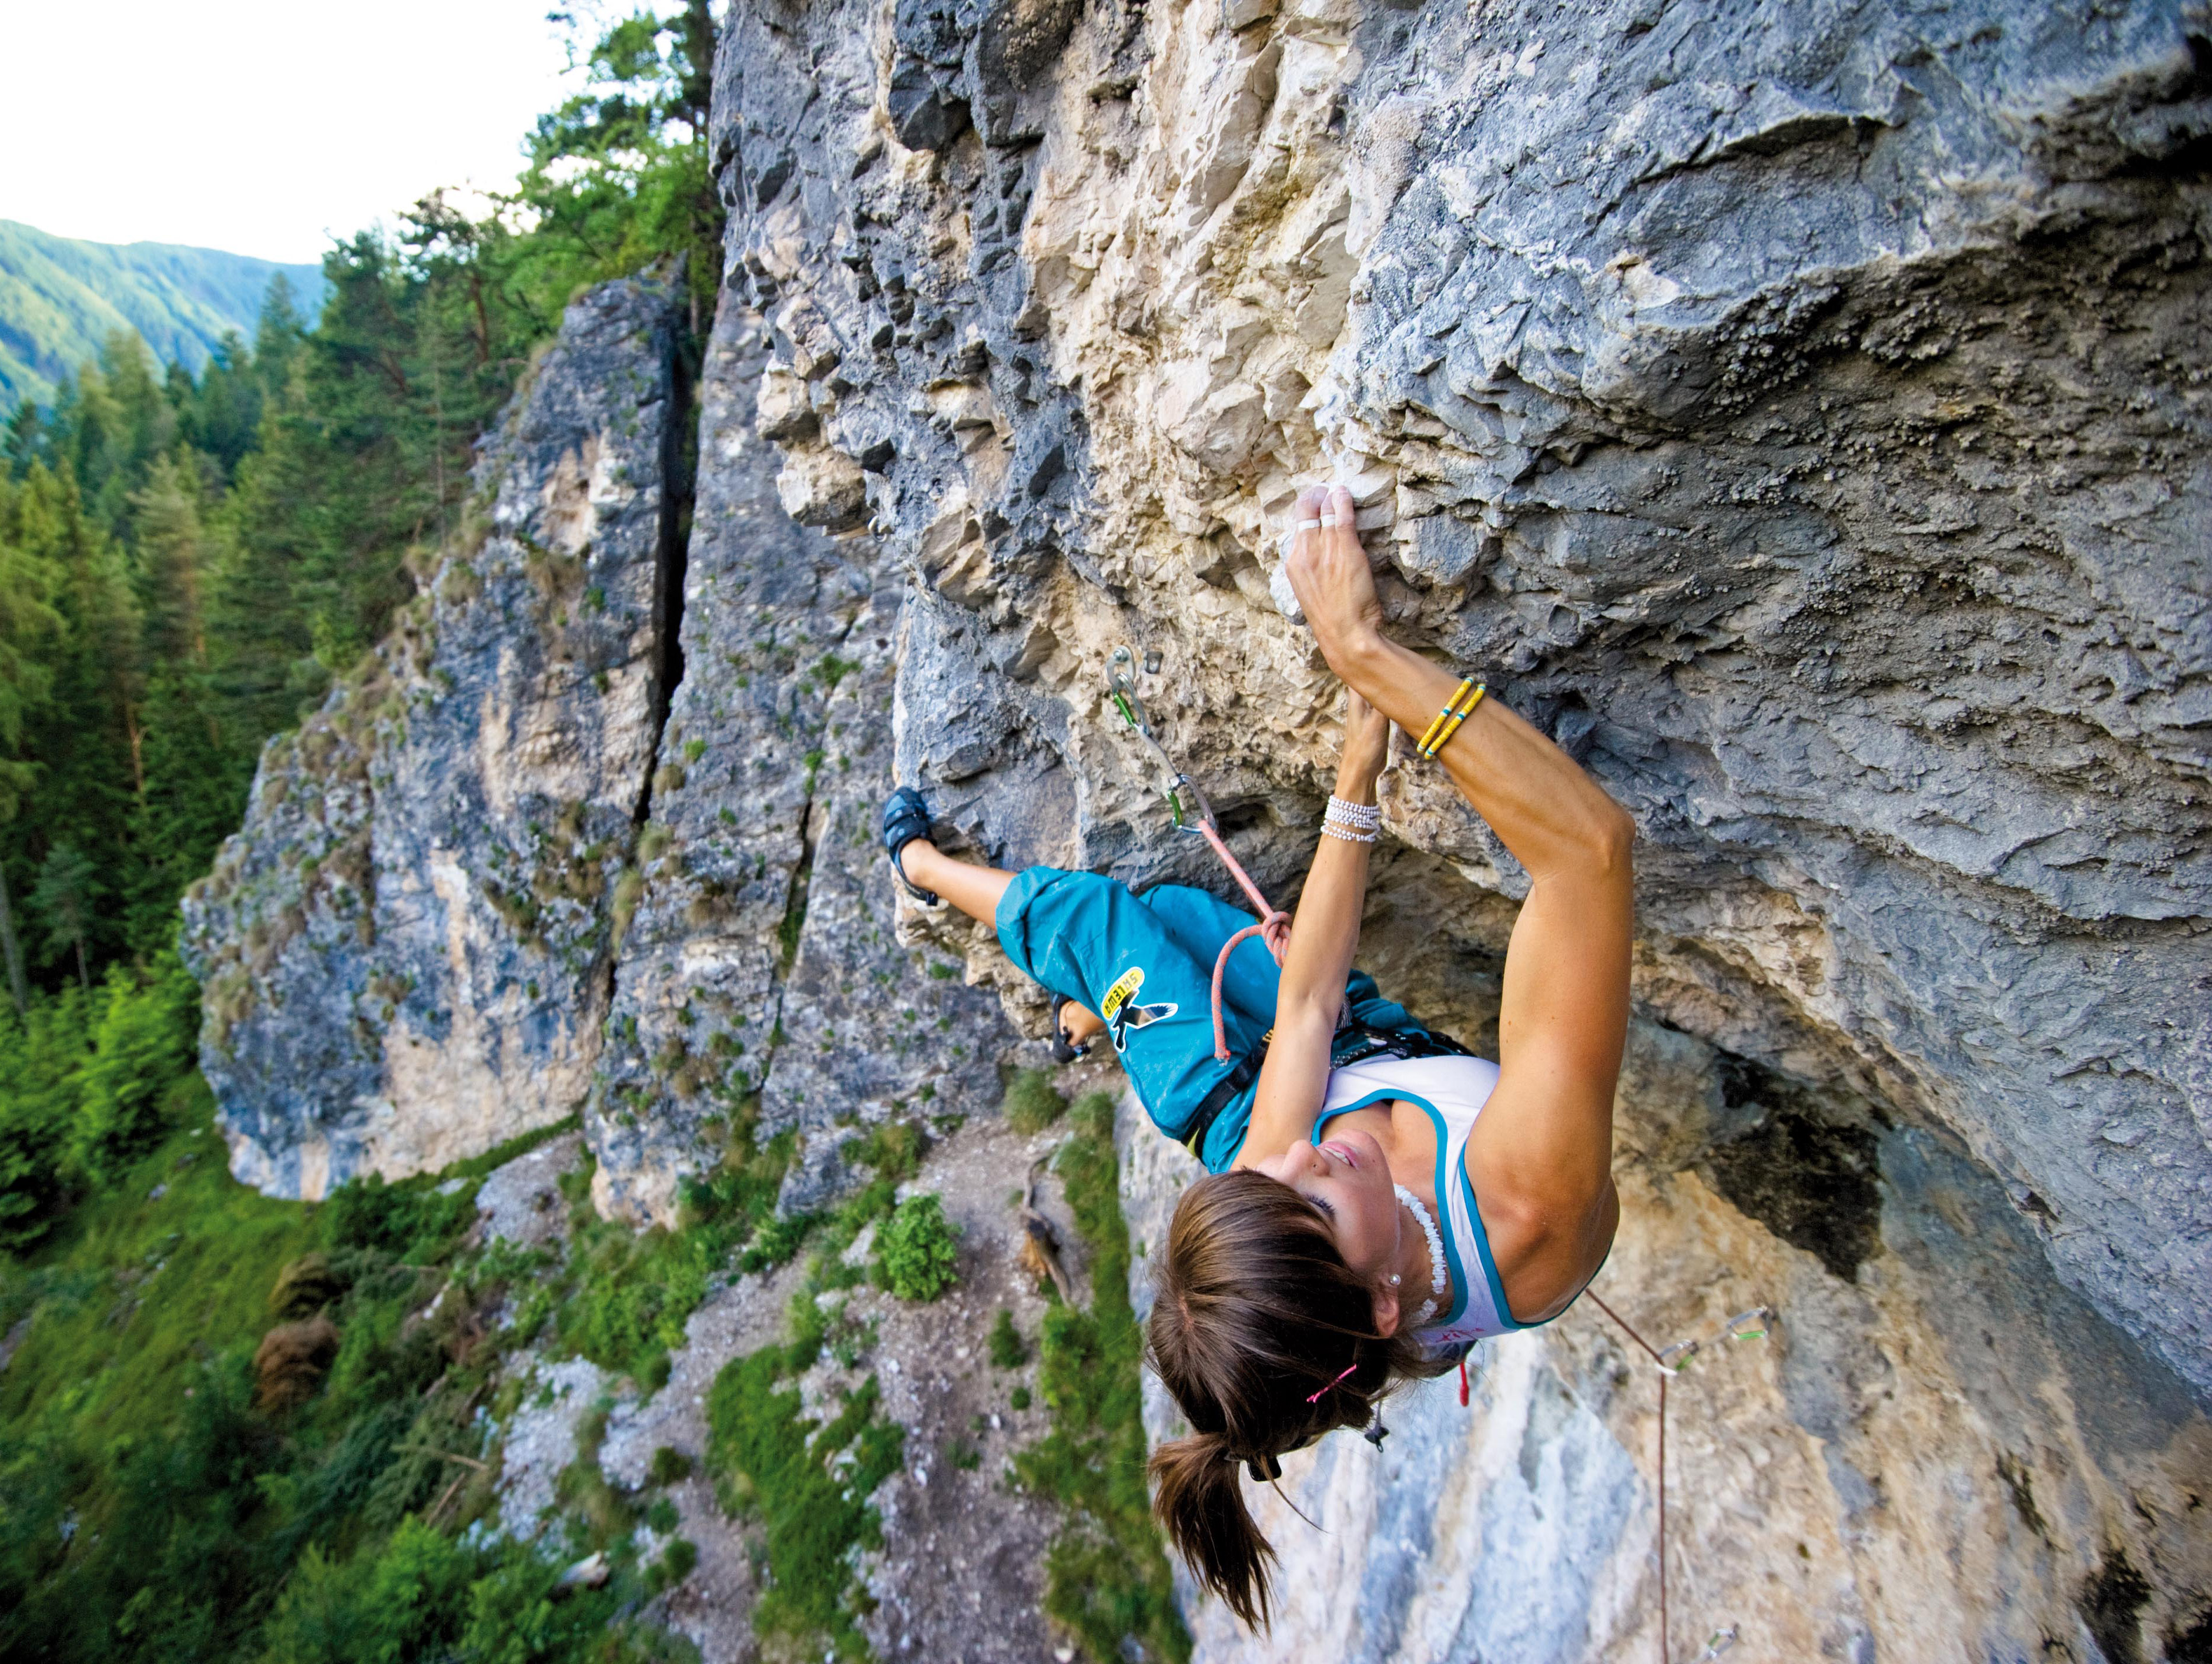 Climbing - definition of climbing by The Free Dictionary